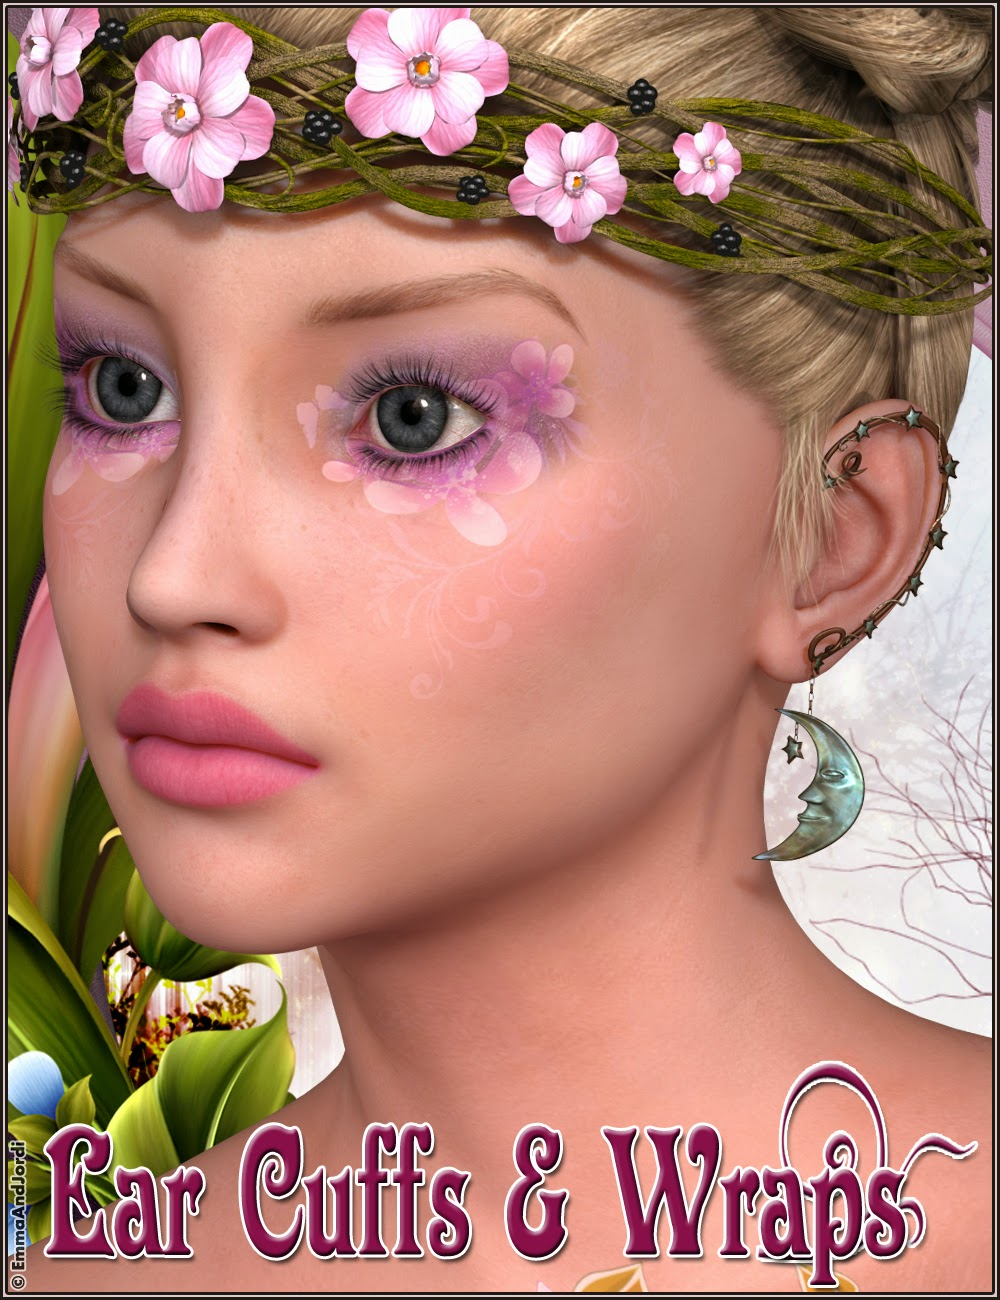 http://www.daz3d.com/ear-cuffs-and-wraps-for-any-figure